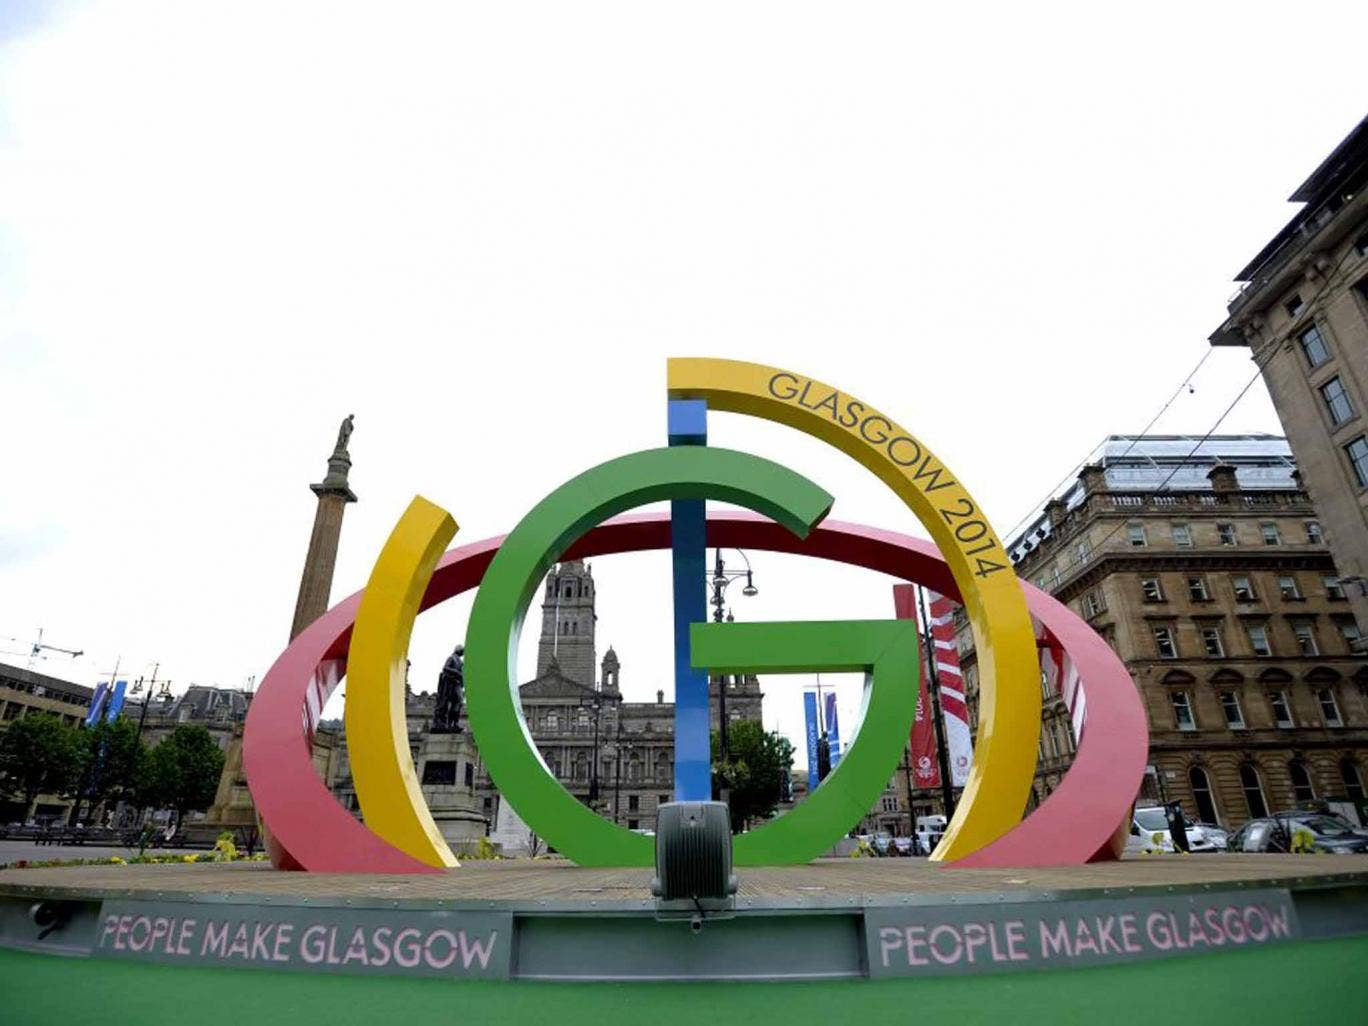 Going logo: The Big G in George Square, Glasgow